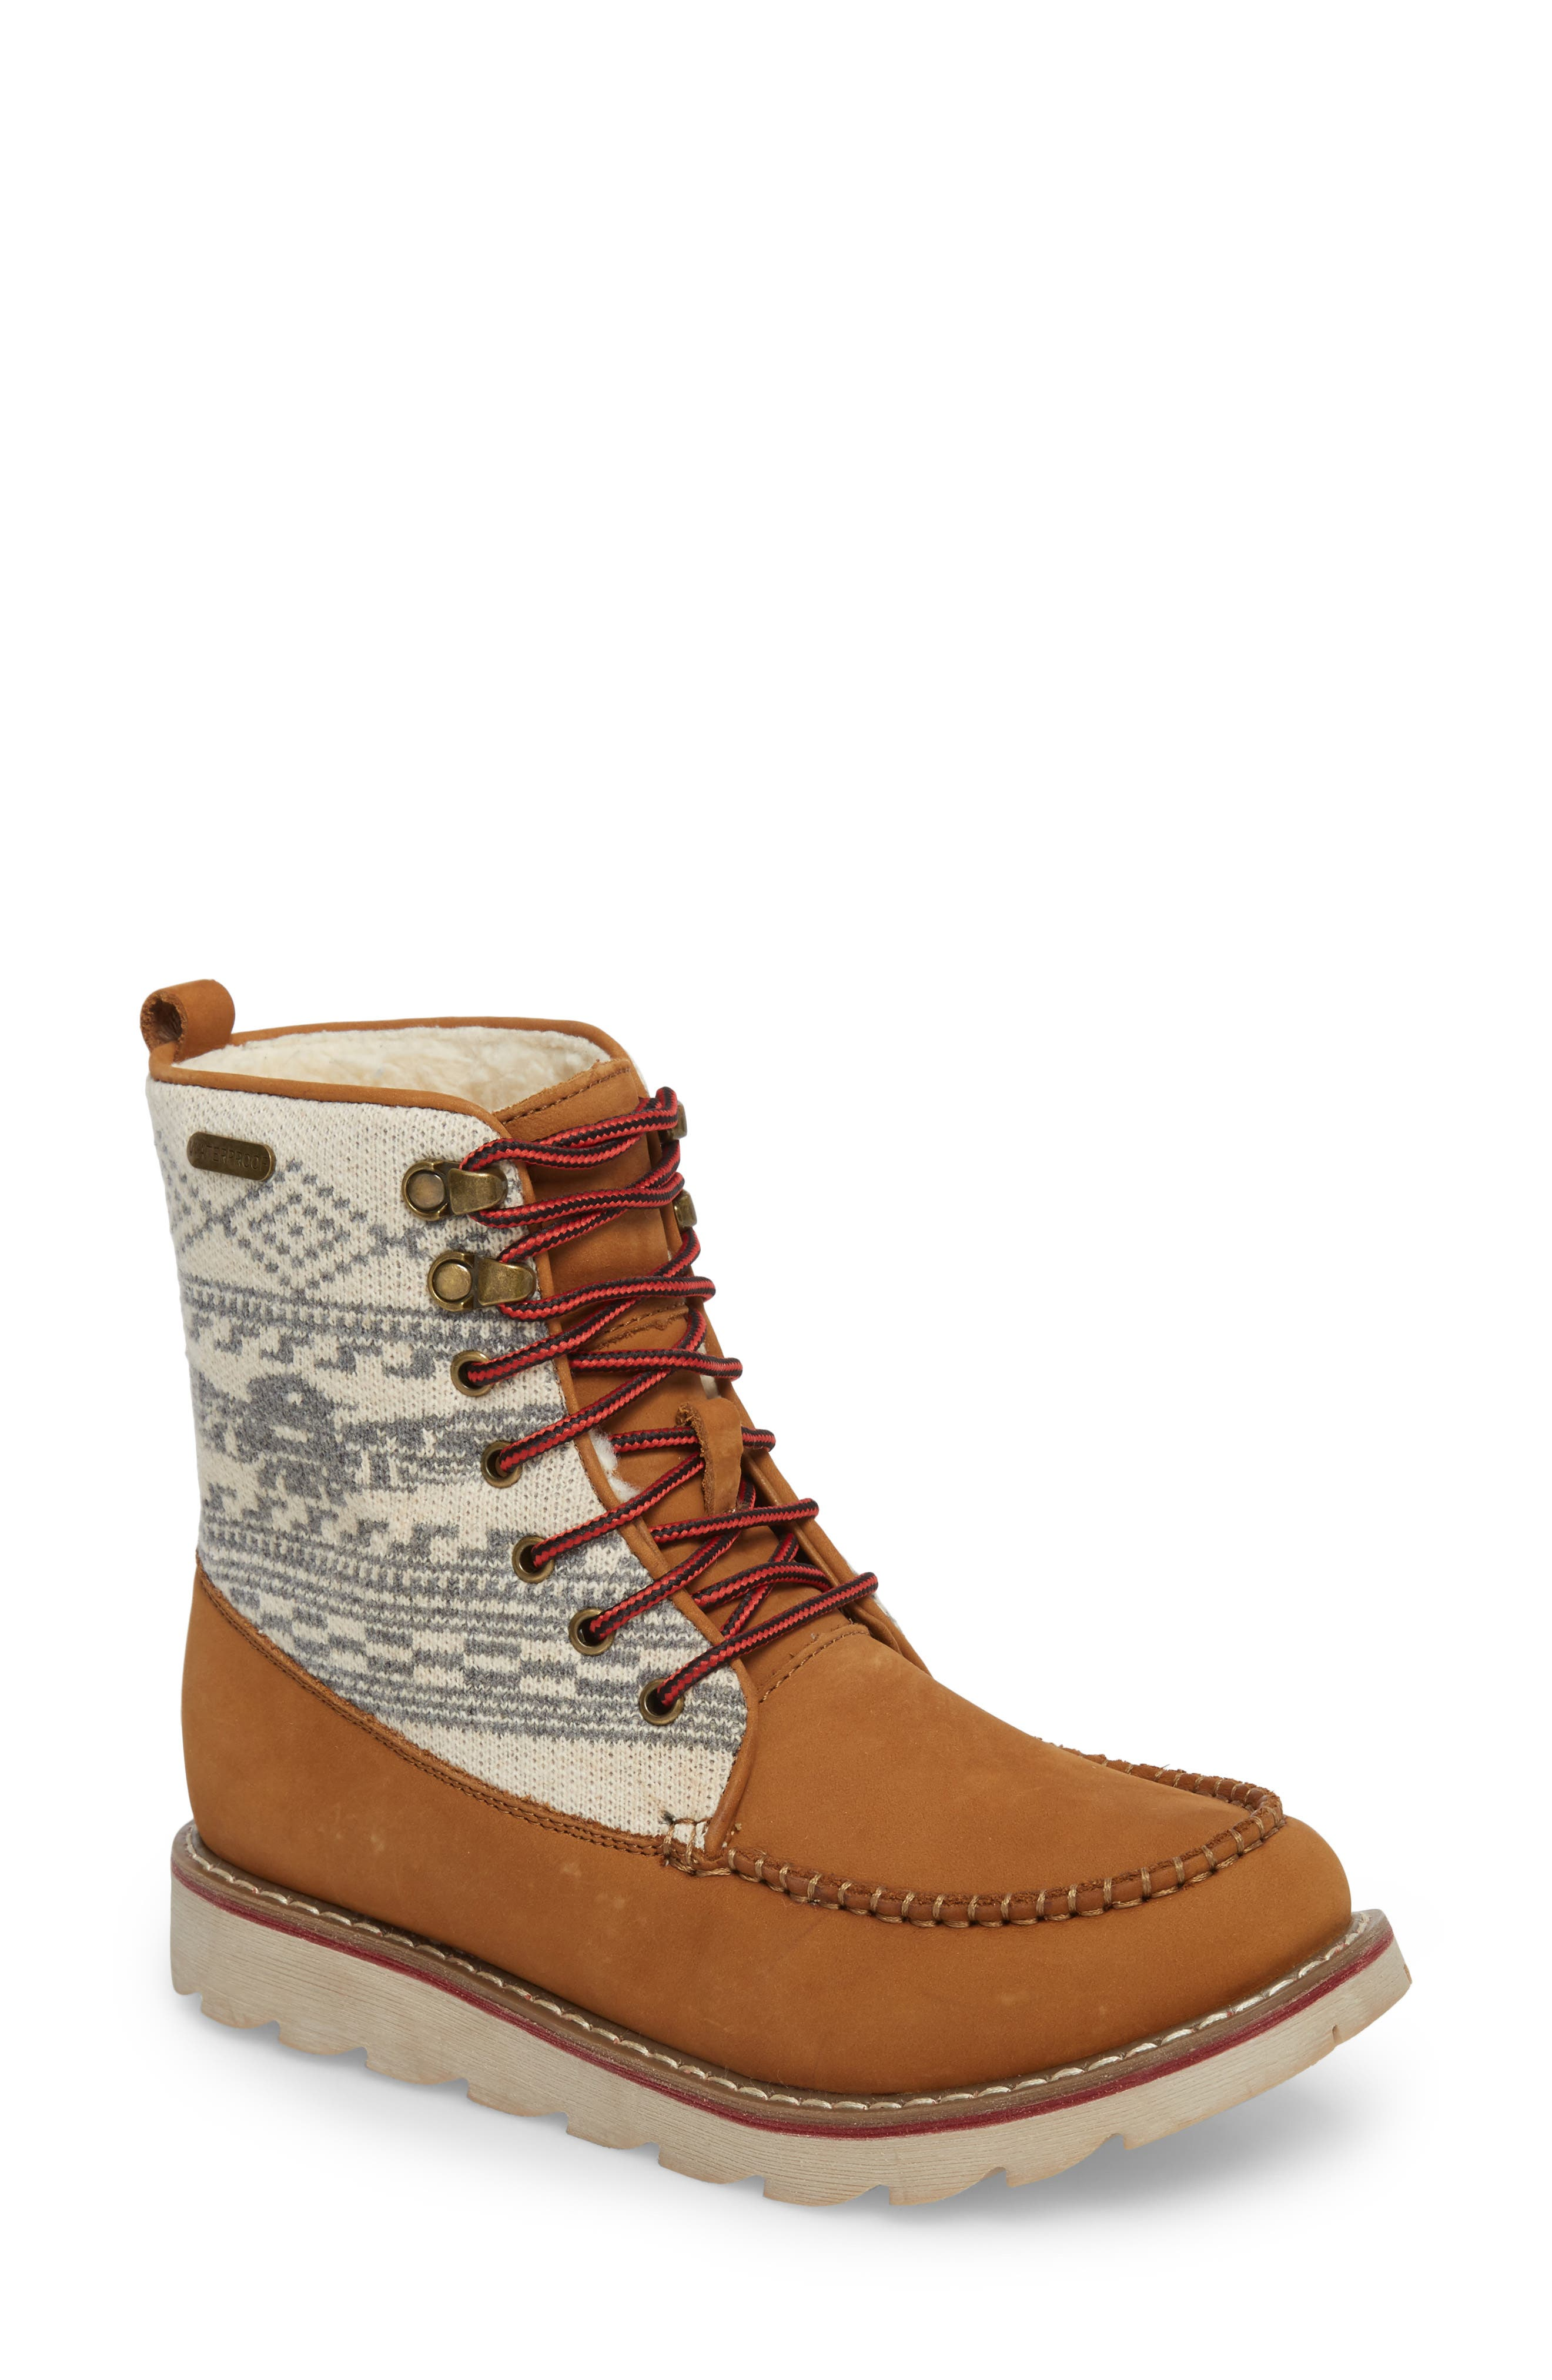 Patterned Waterproof Snow Boot,                             Main thumbnail 1, color,                             Tan Leather